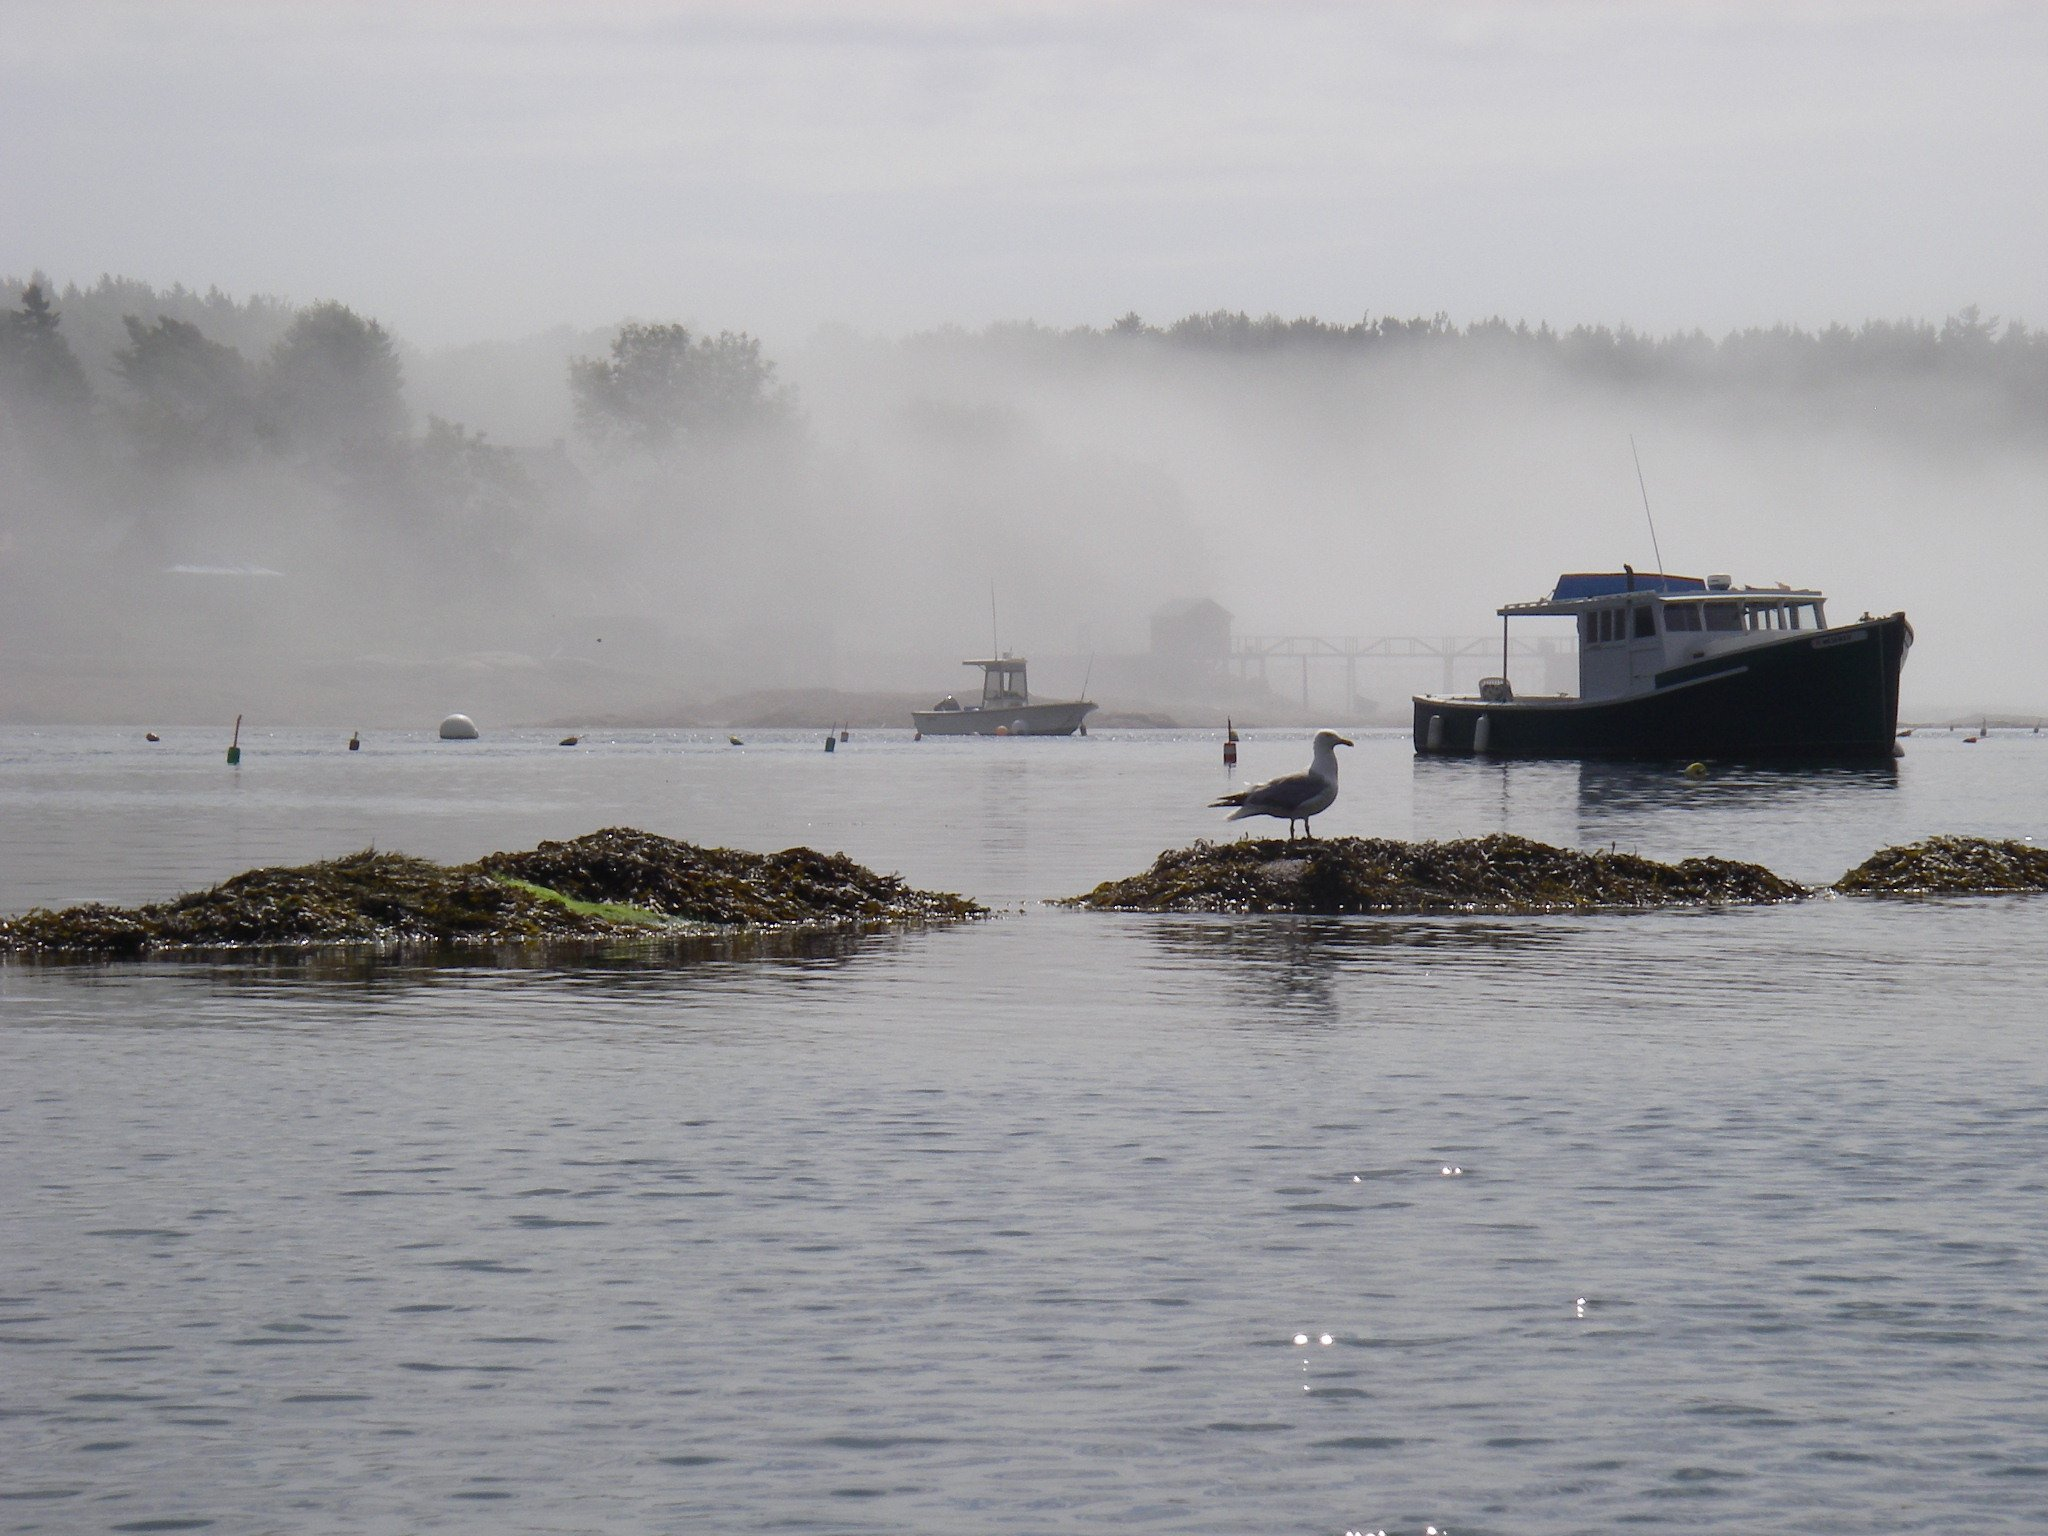 Foggy morning seen from the water in a sea kayak.